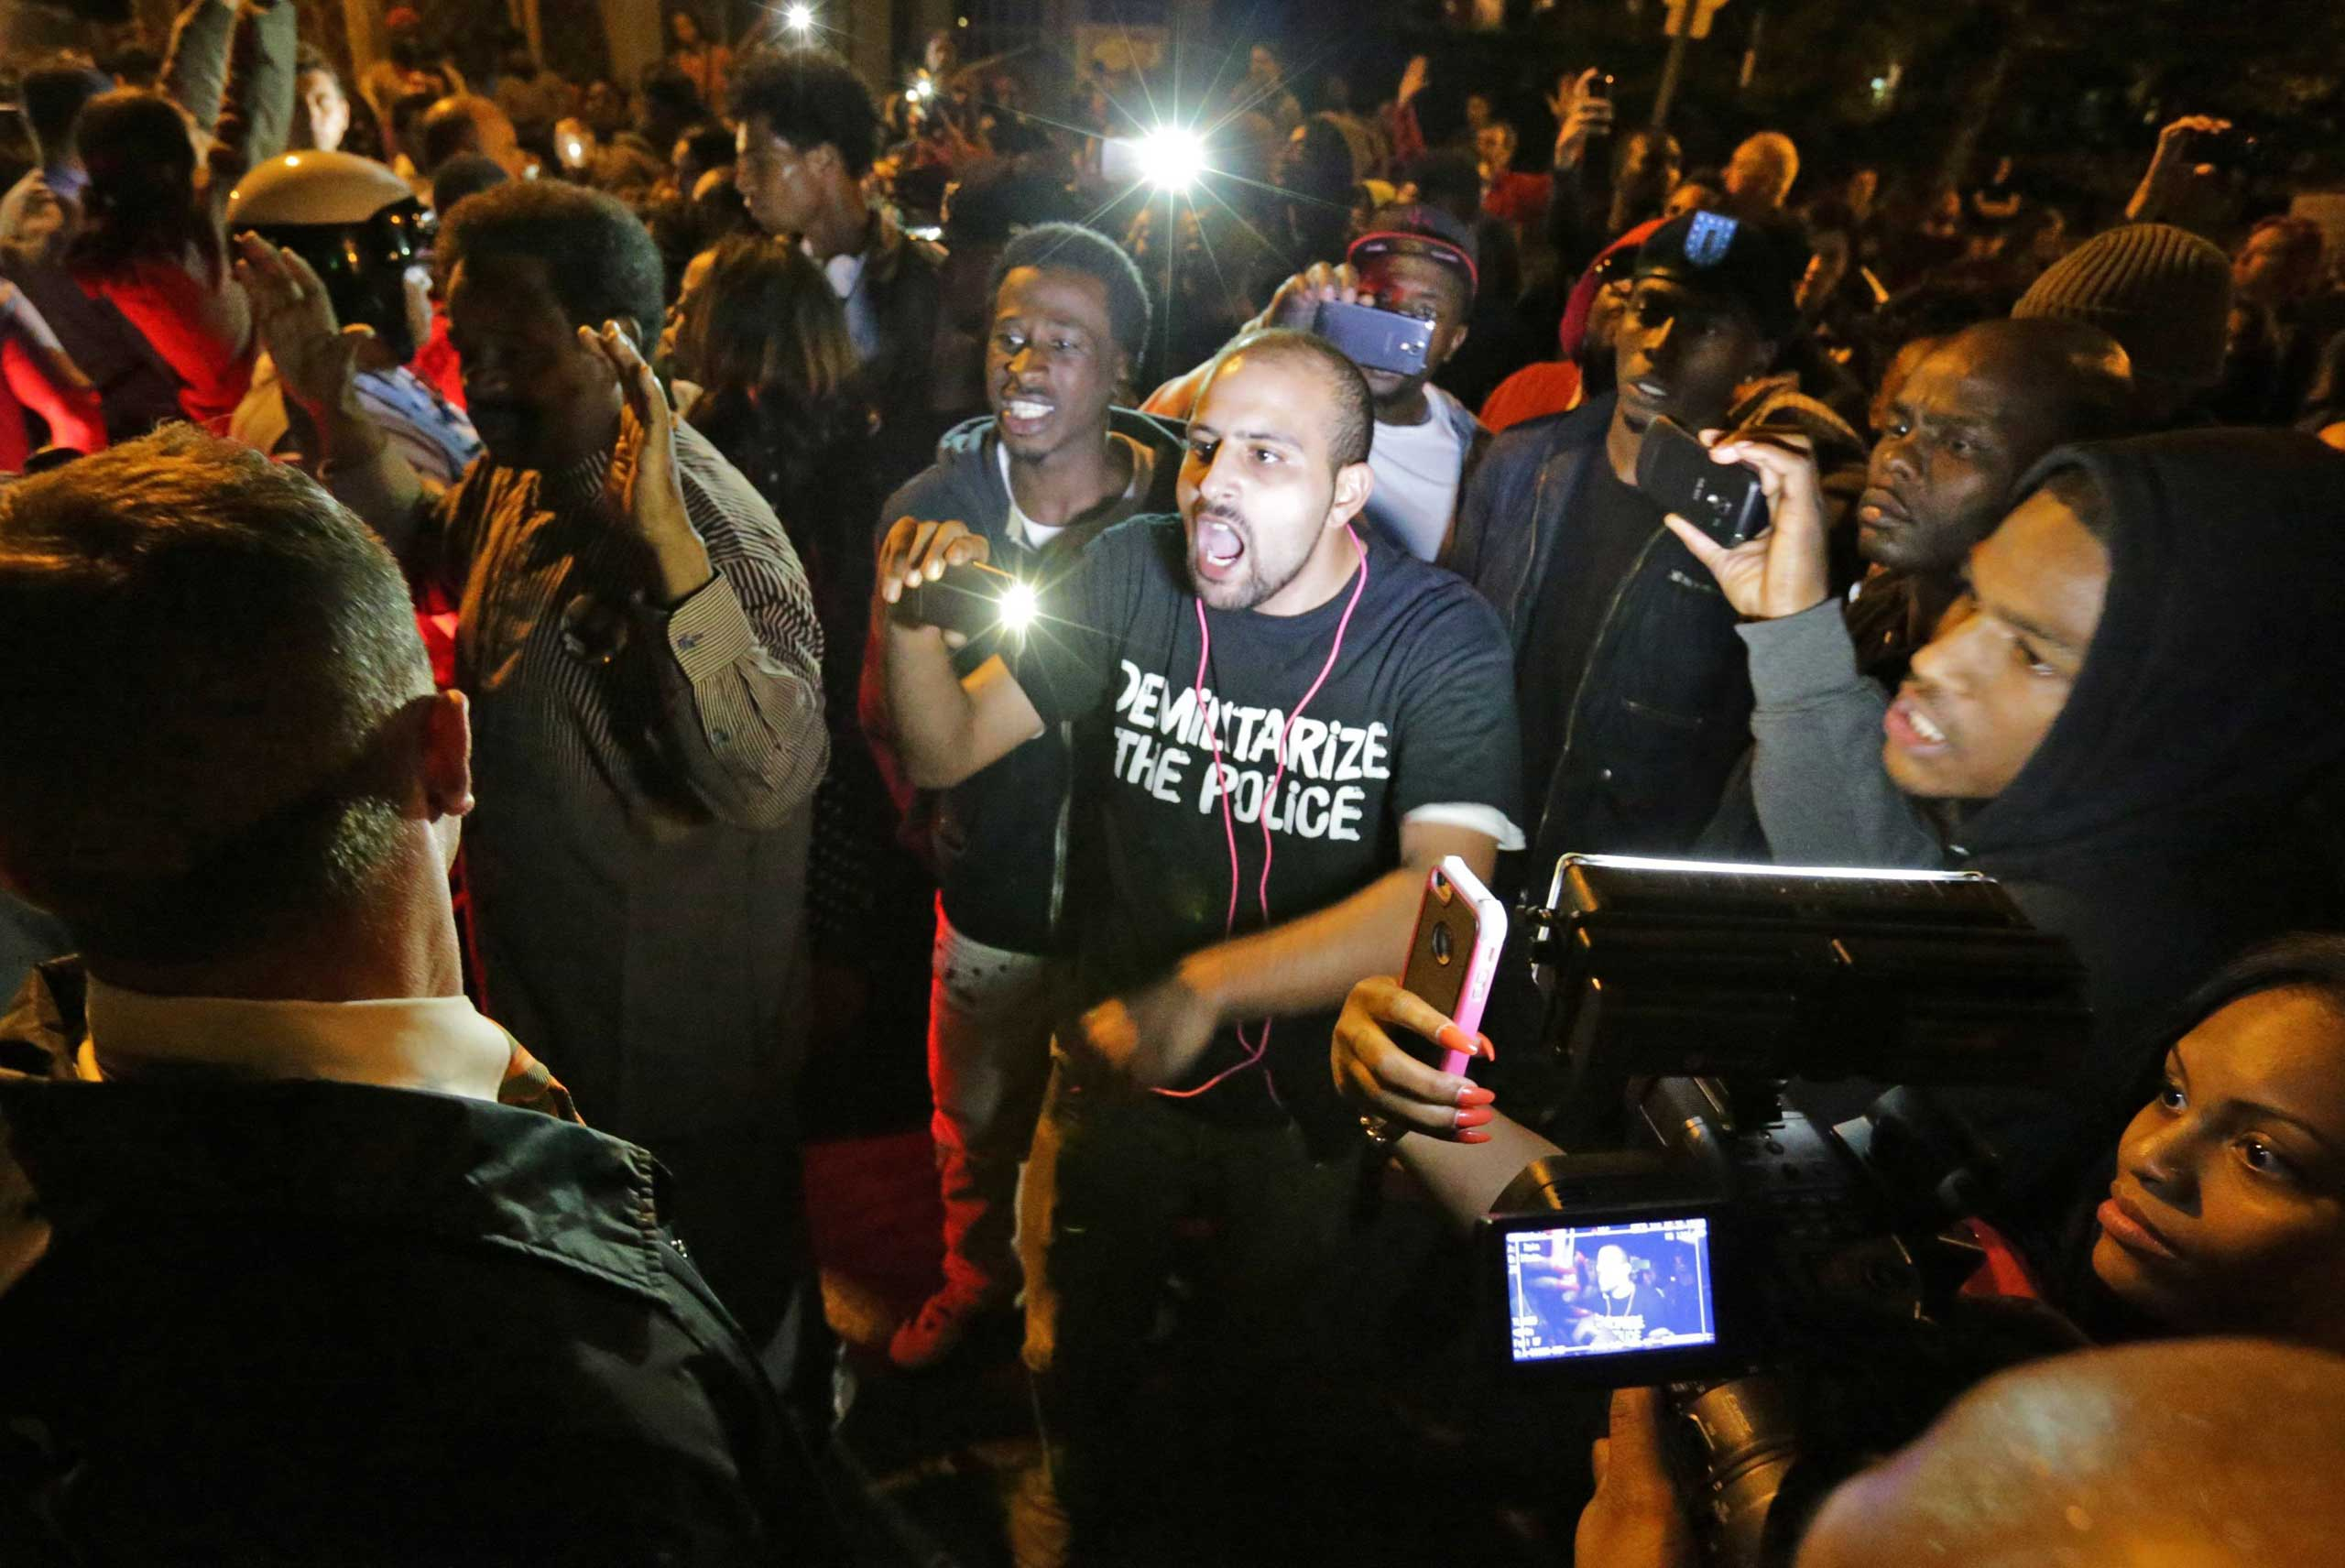 Crowds confront police near the scene in south St. Louis where a man was fatally shot by an off-duty St. Louis police officer on Oct. 8, 2014.